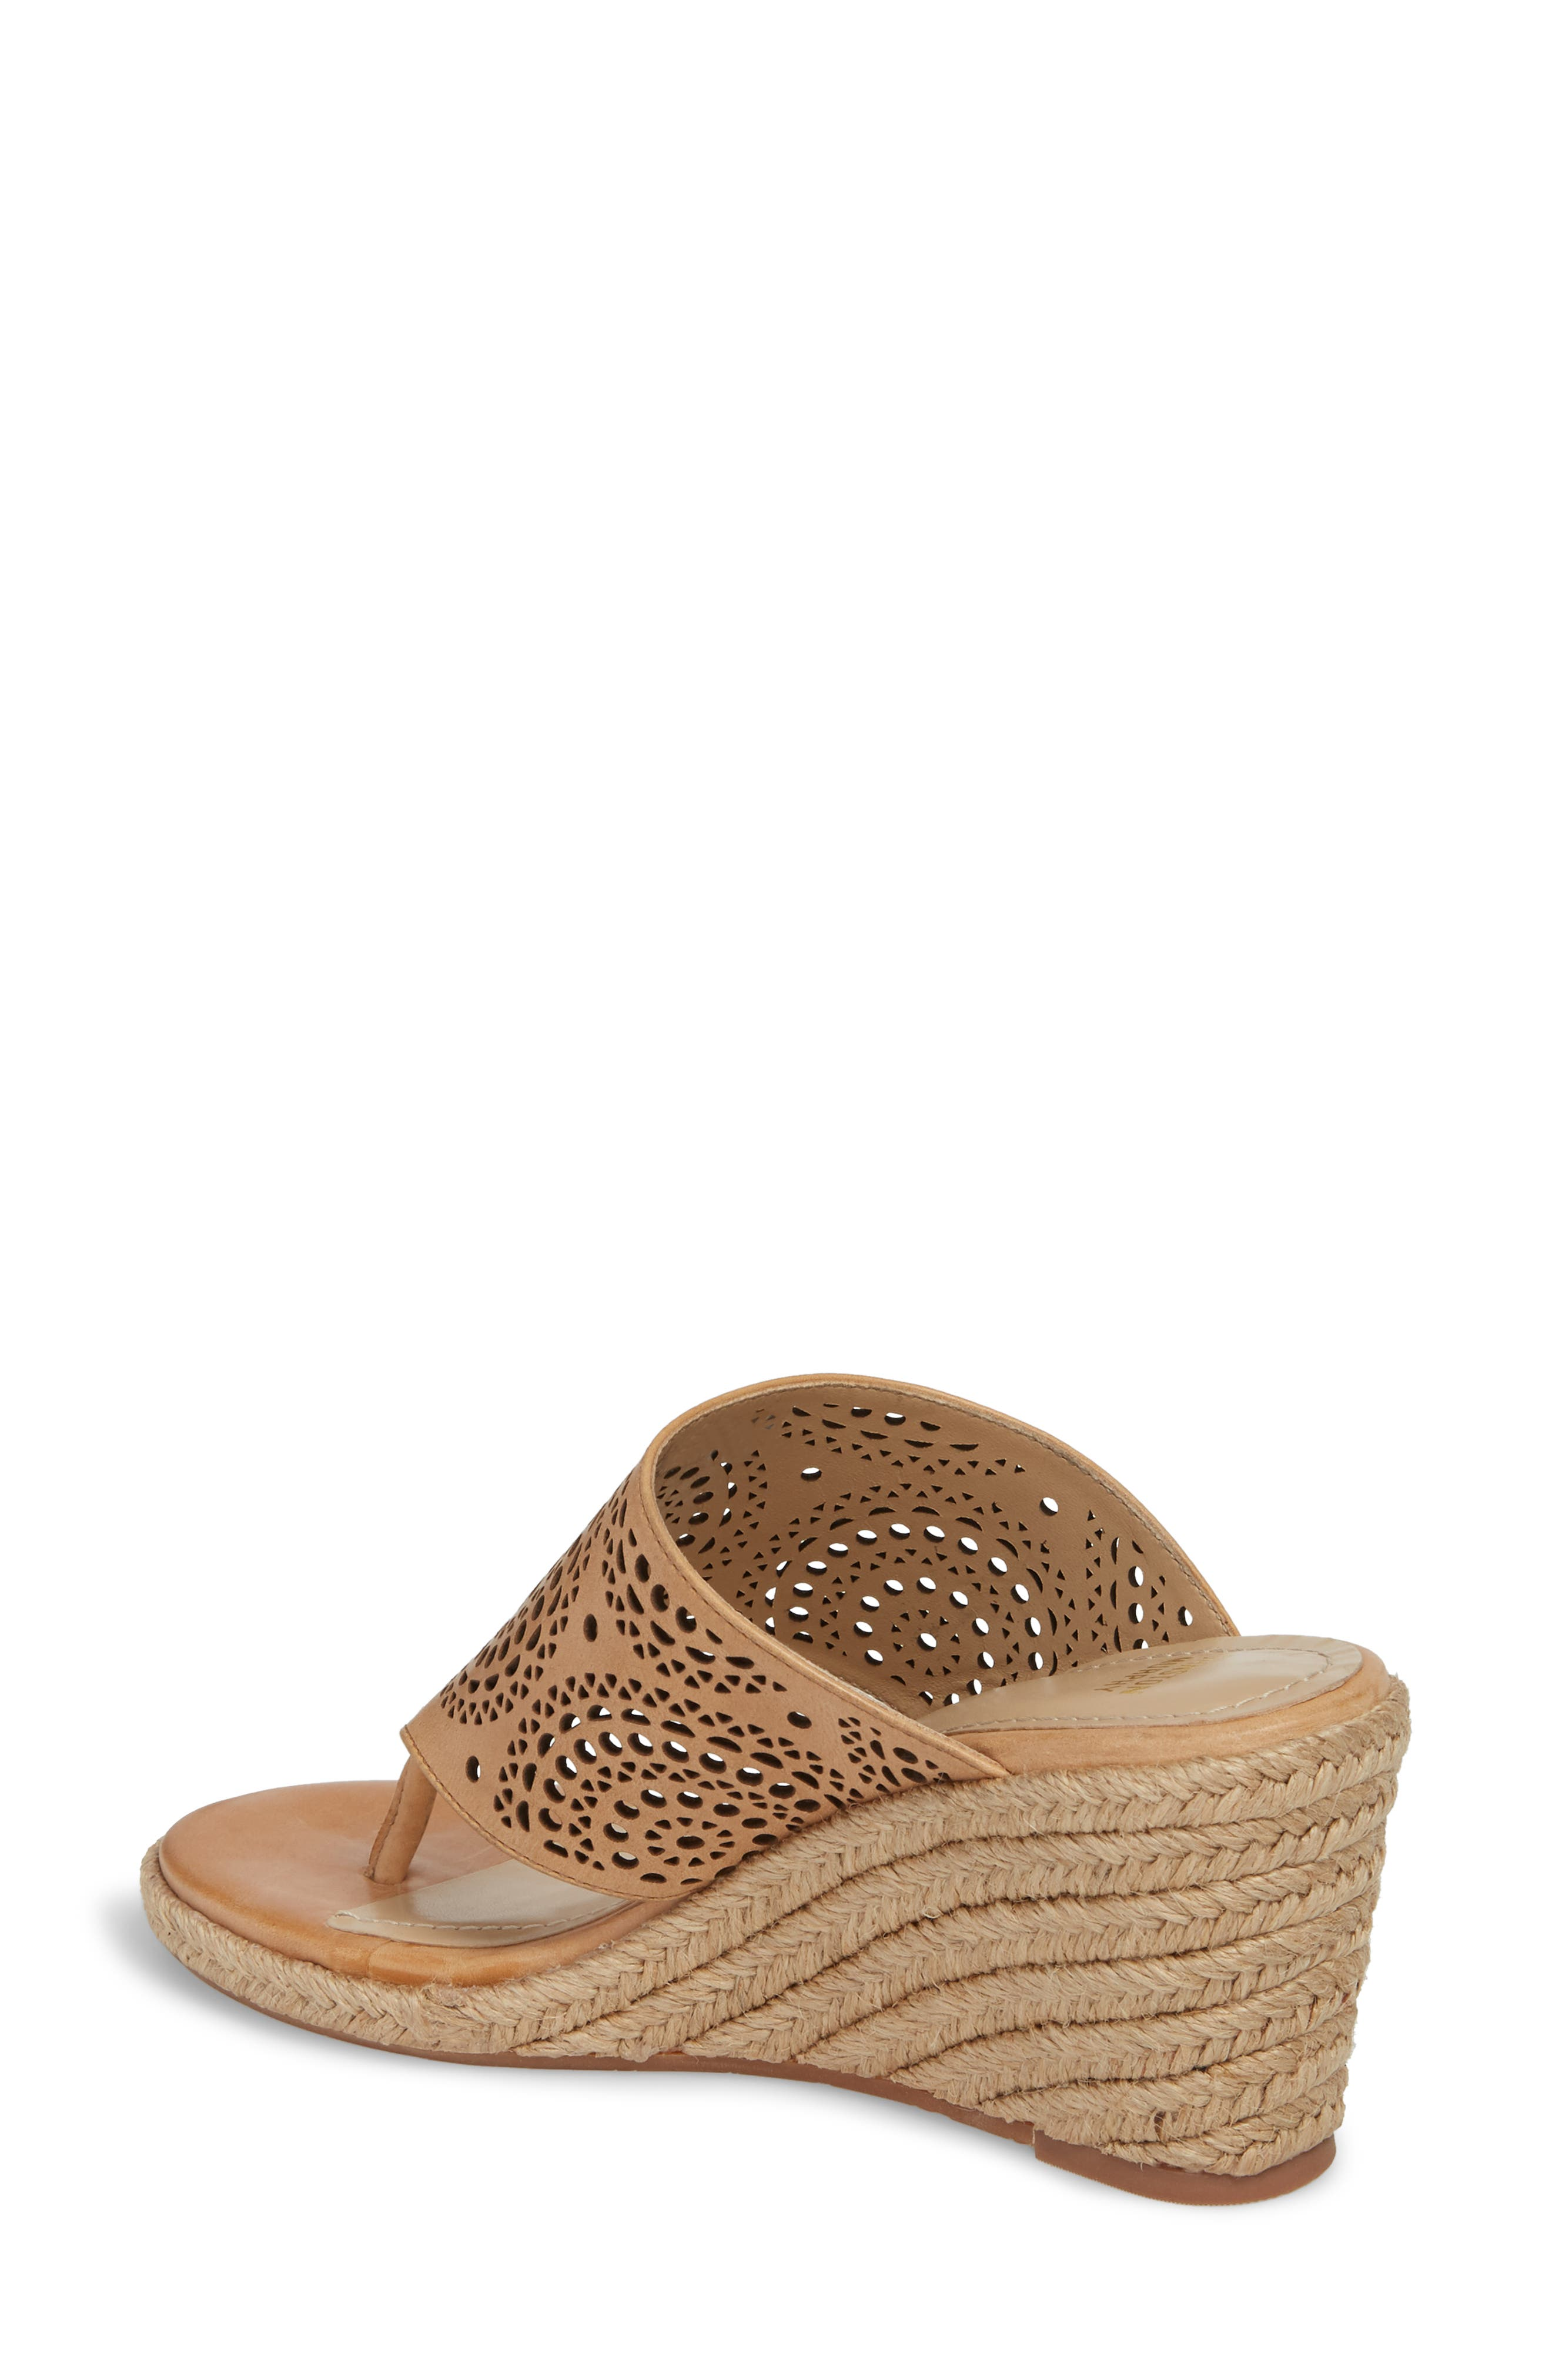 Gina Wedge Sandal,                             Alternate thumbnail 2, color,                             Tan Leather